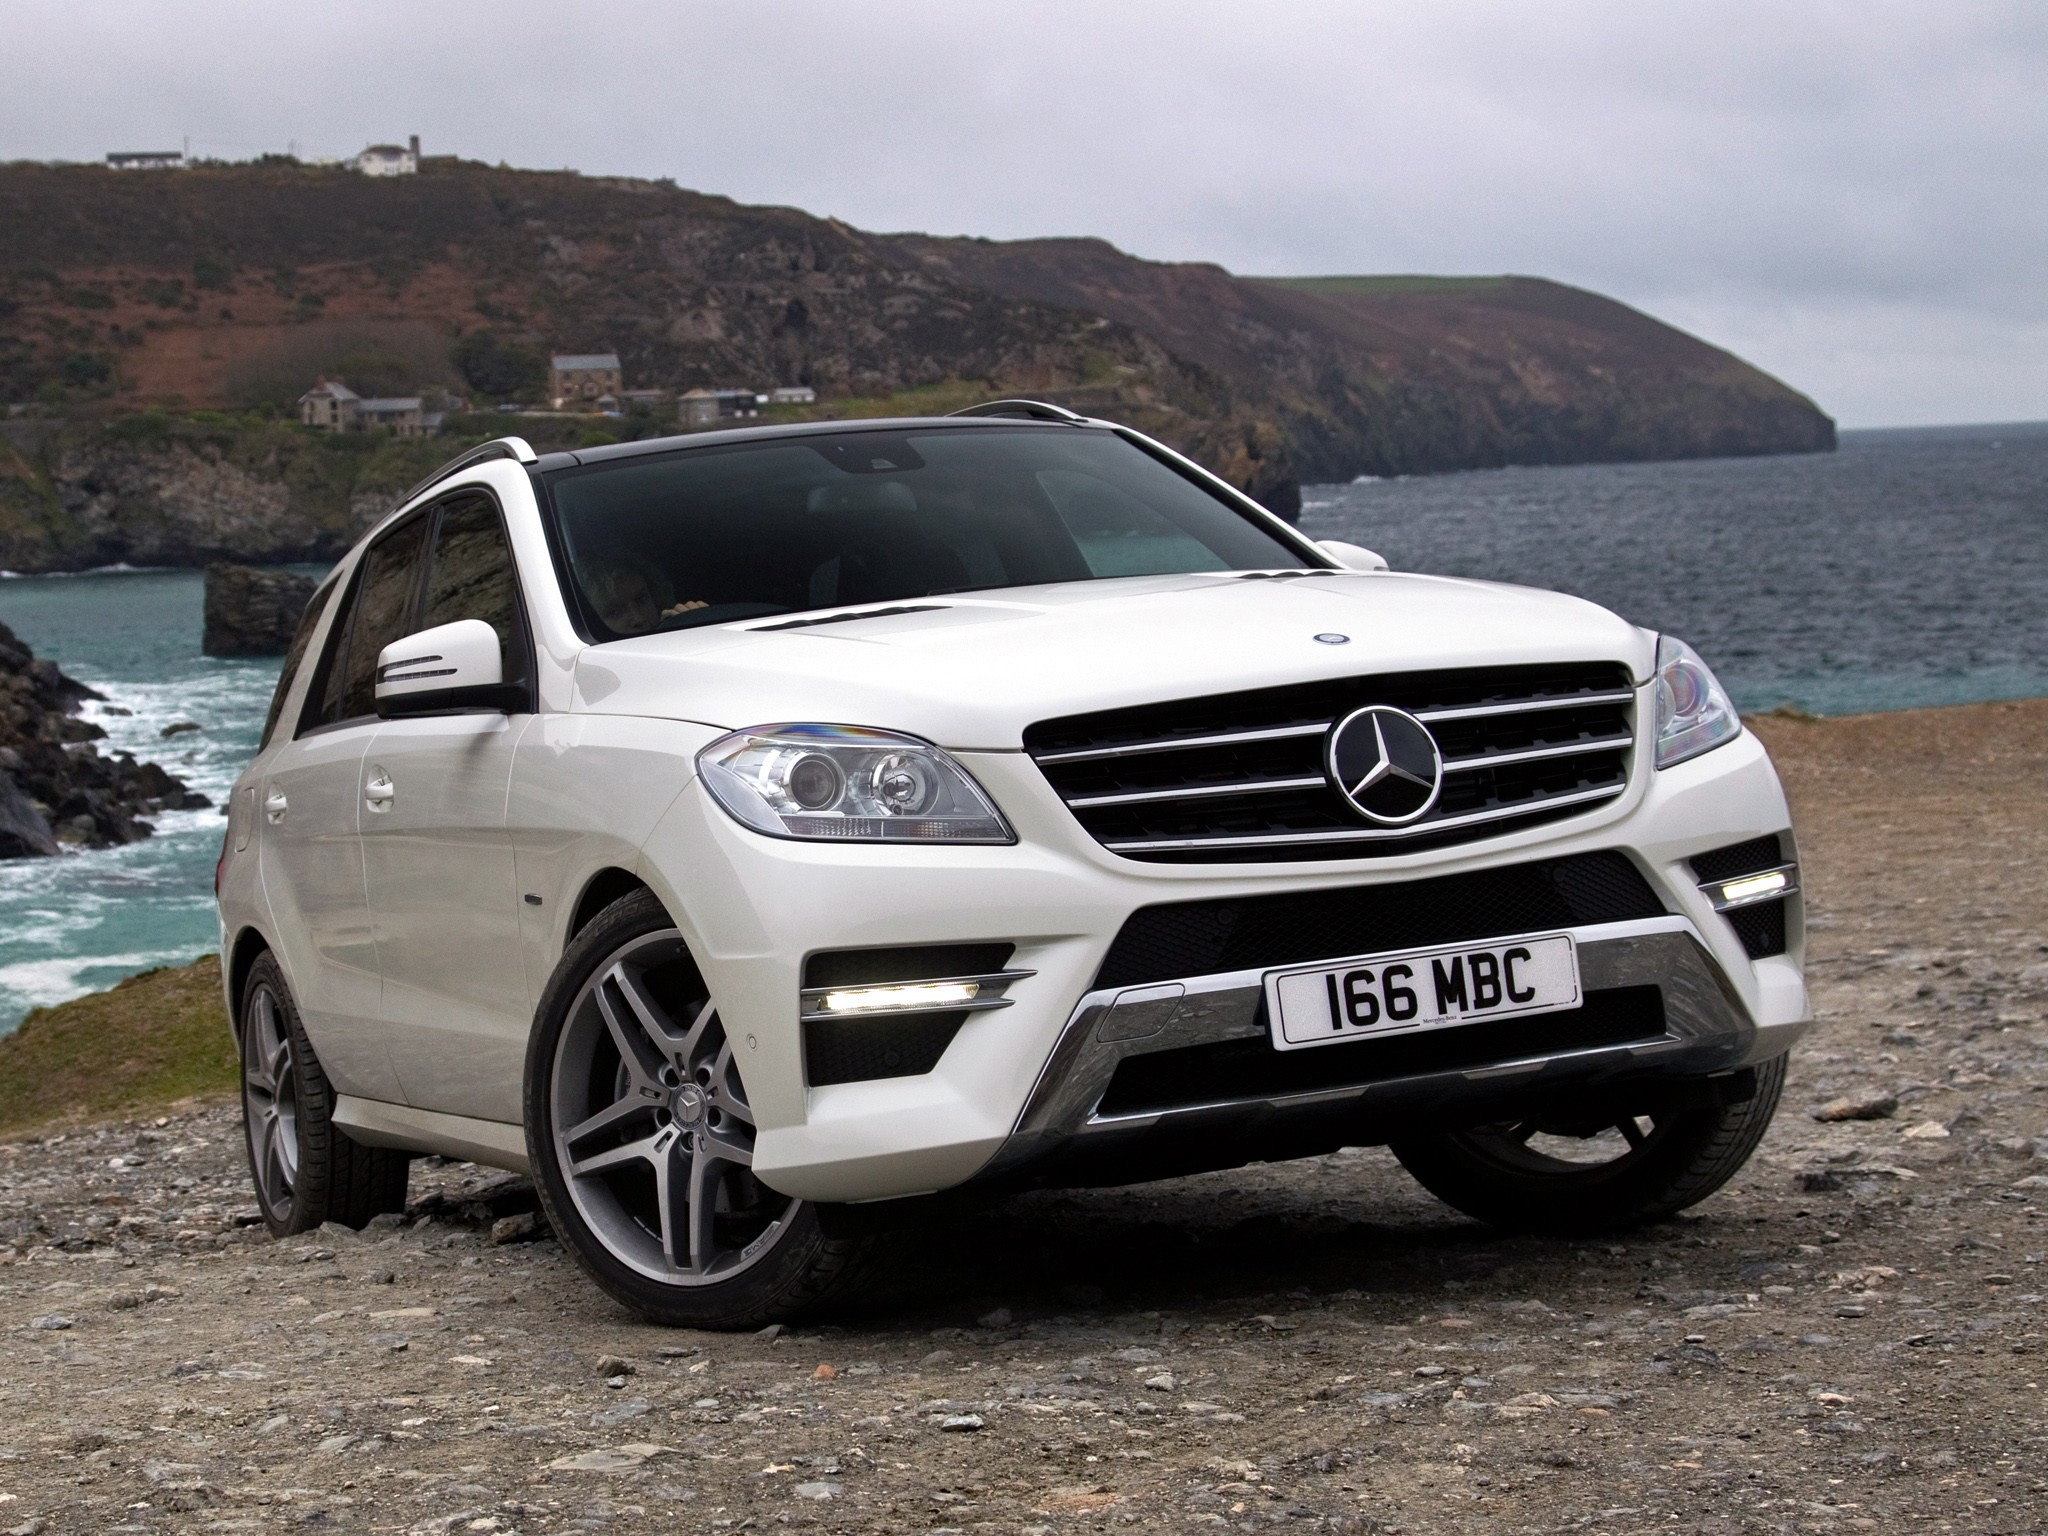 mercedes benz ml klasse w166 specs 2011 2012 2013 2014 2015 autoevolution. Black Bedroom Furniture Sets. Home Design Ideas